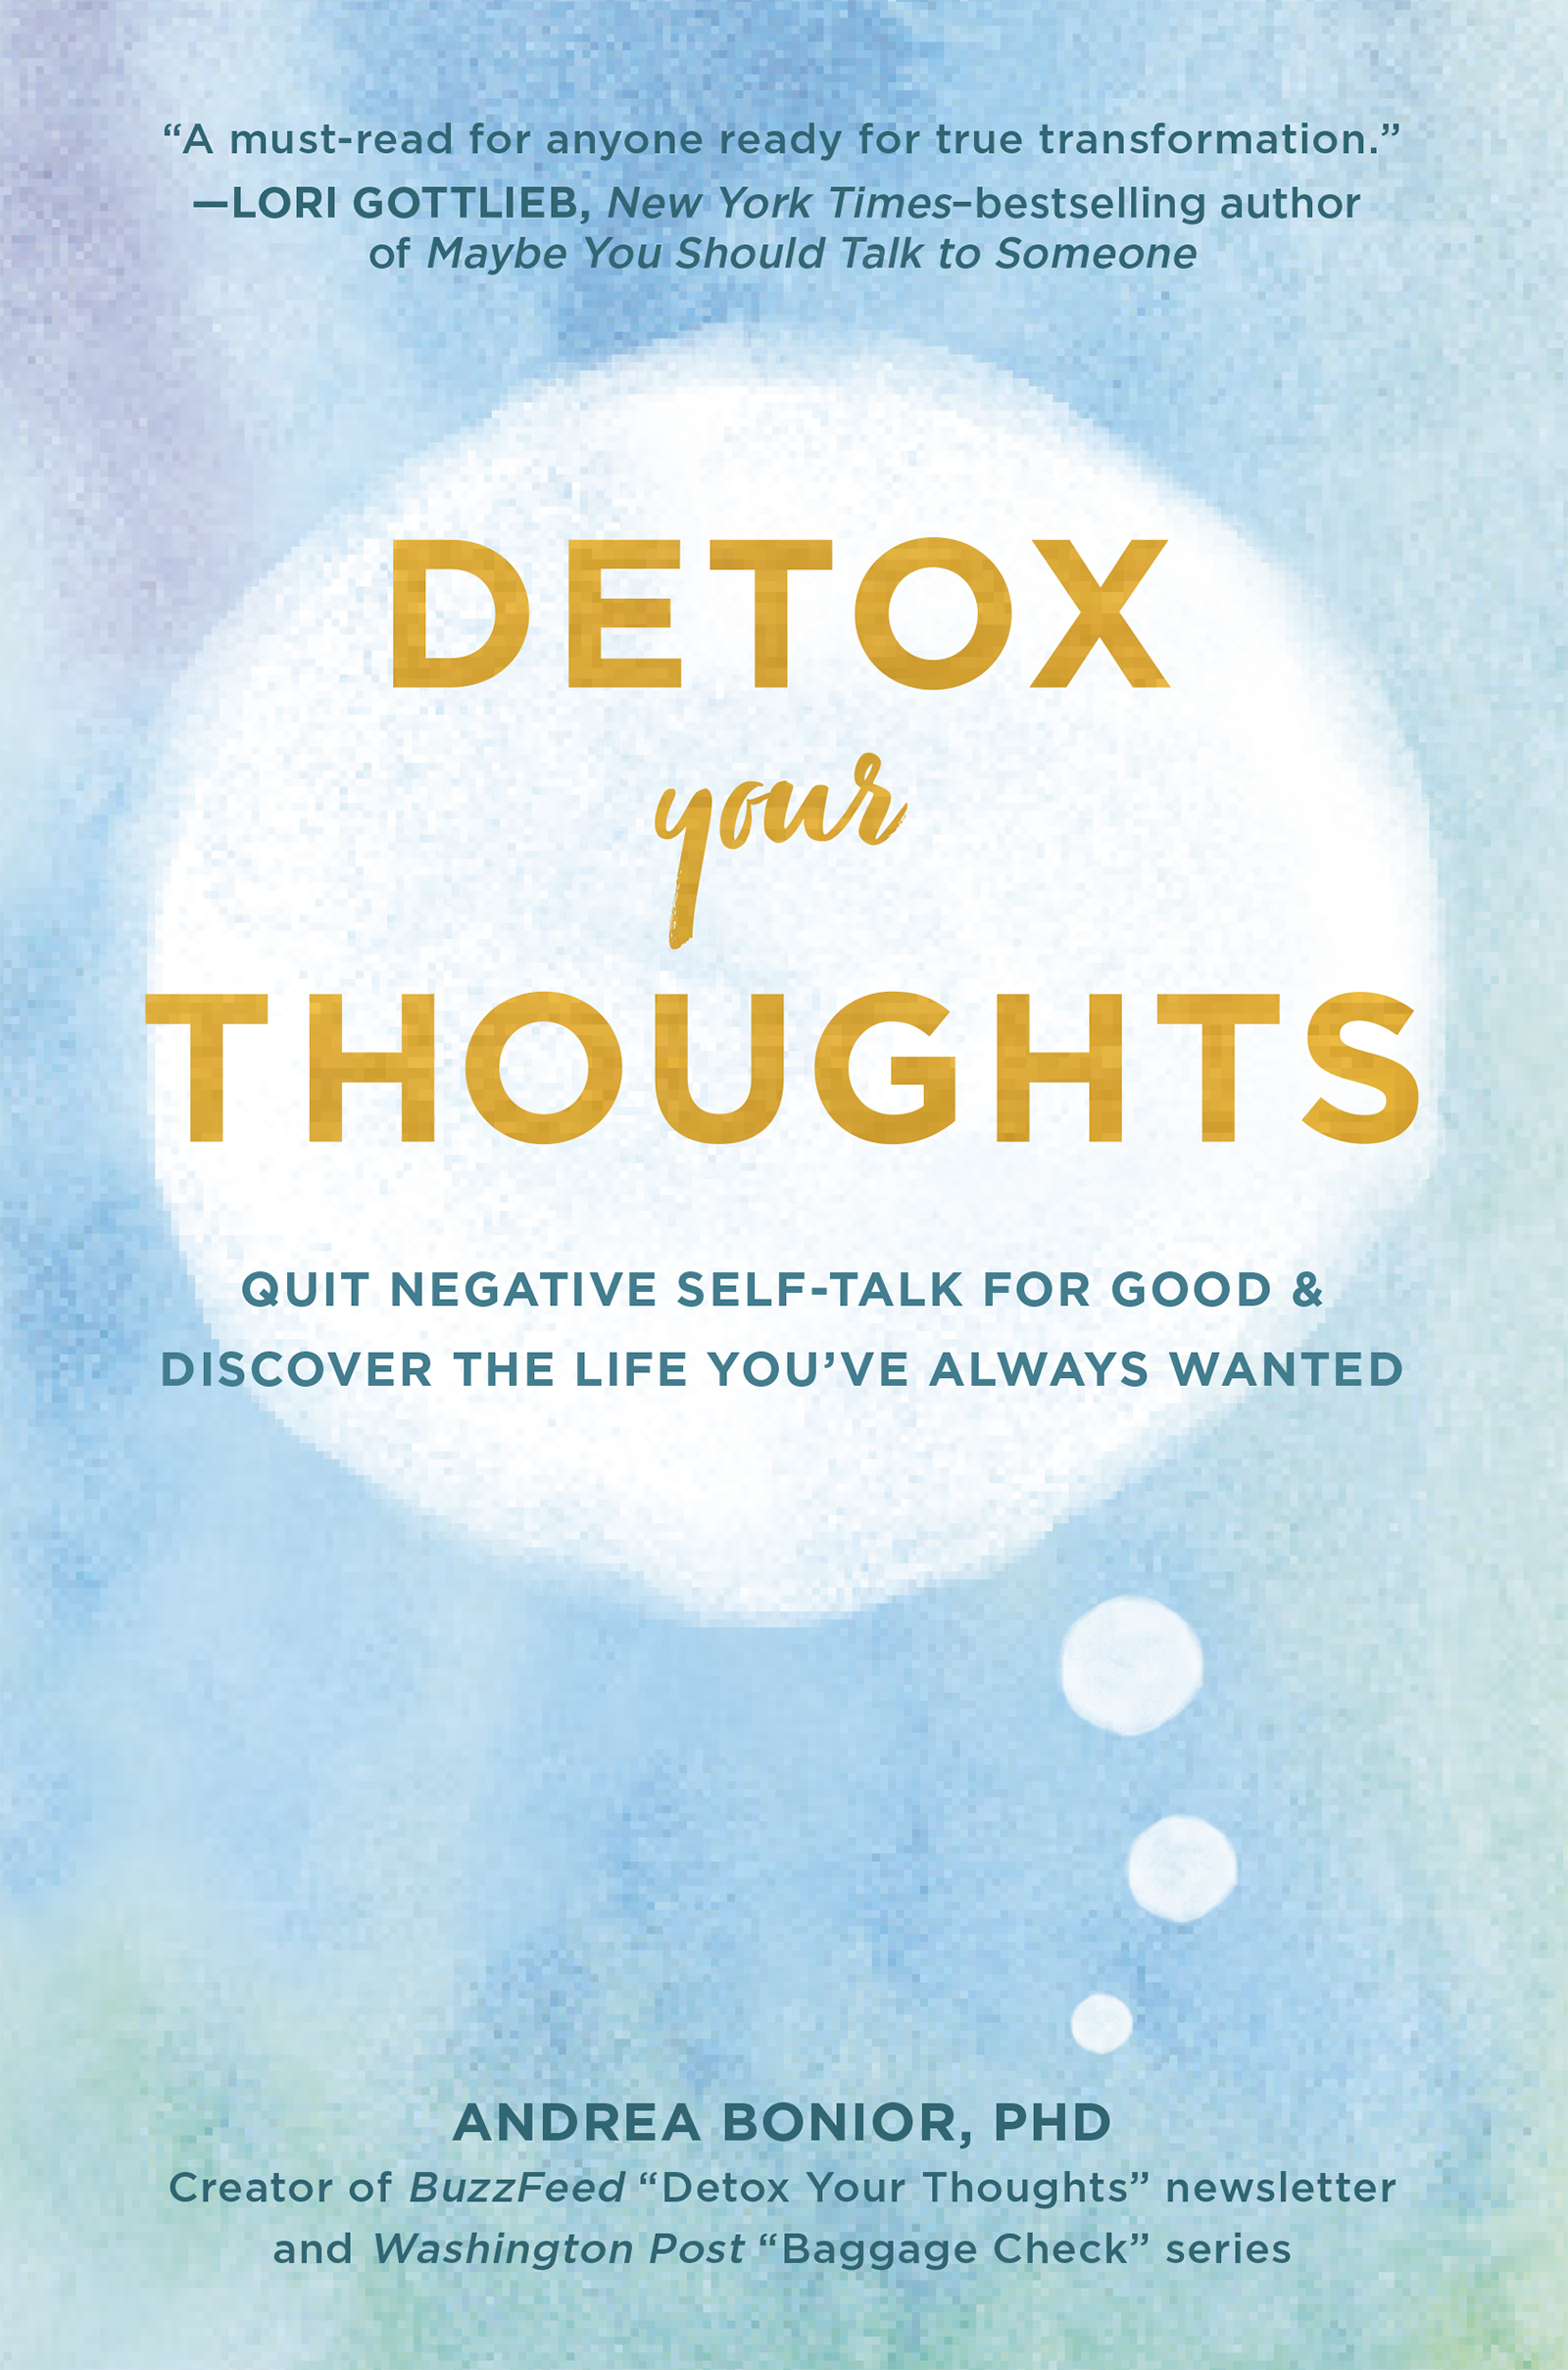 Detox Your Thoughts Quit Negative Self-Talk for Good and Discover the Life You've Always Wanted